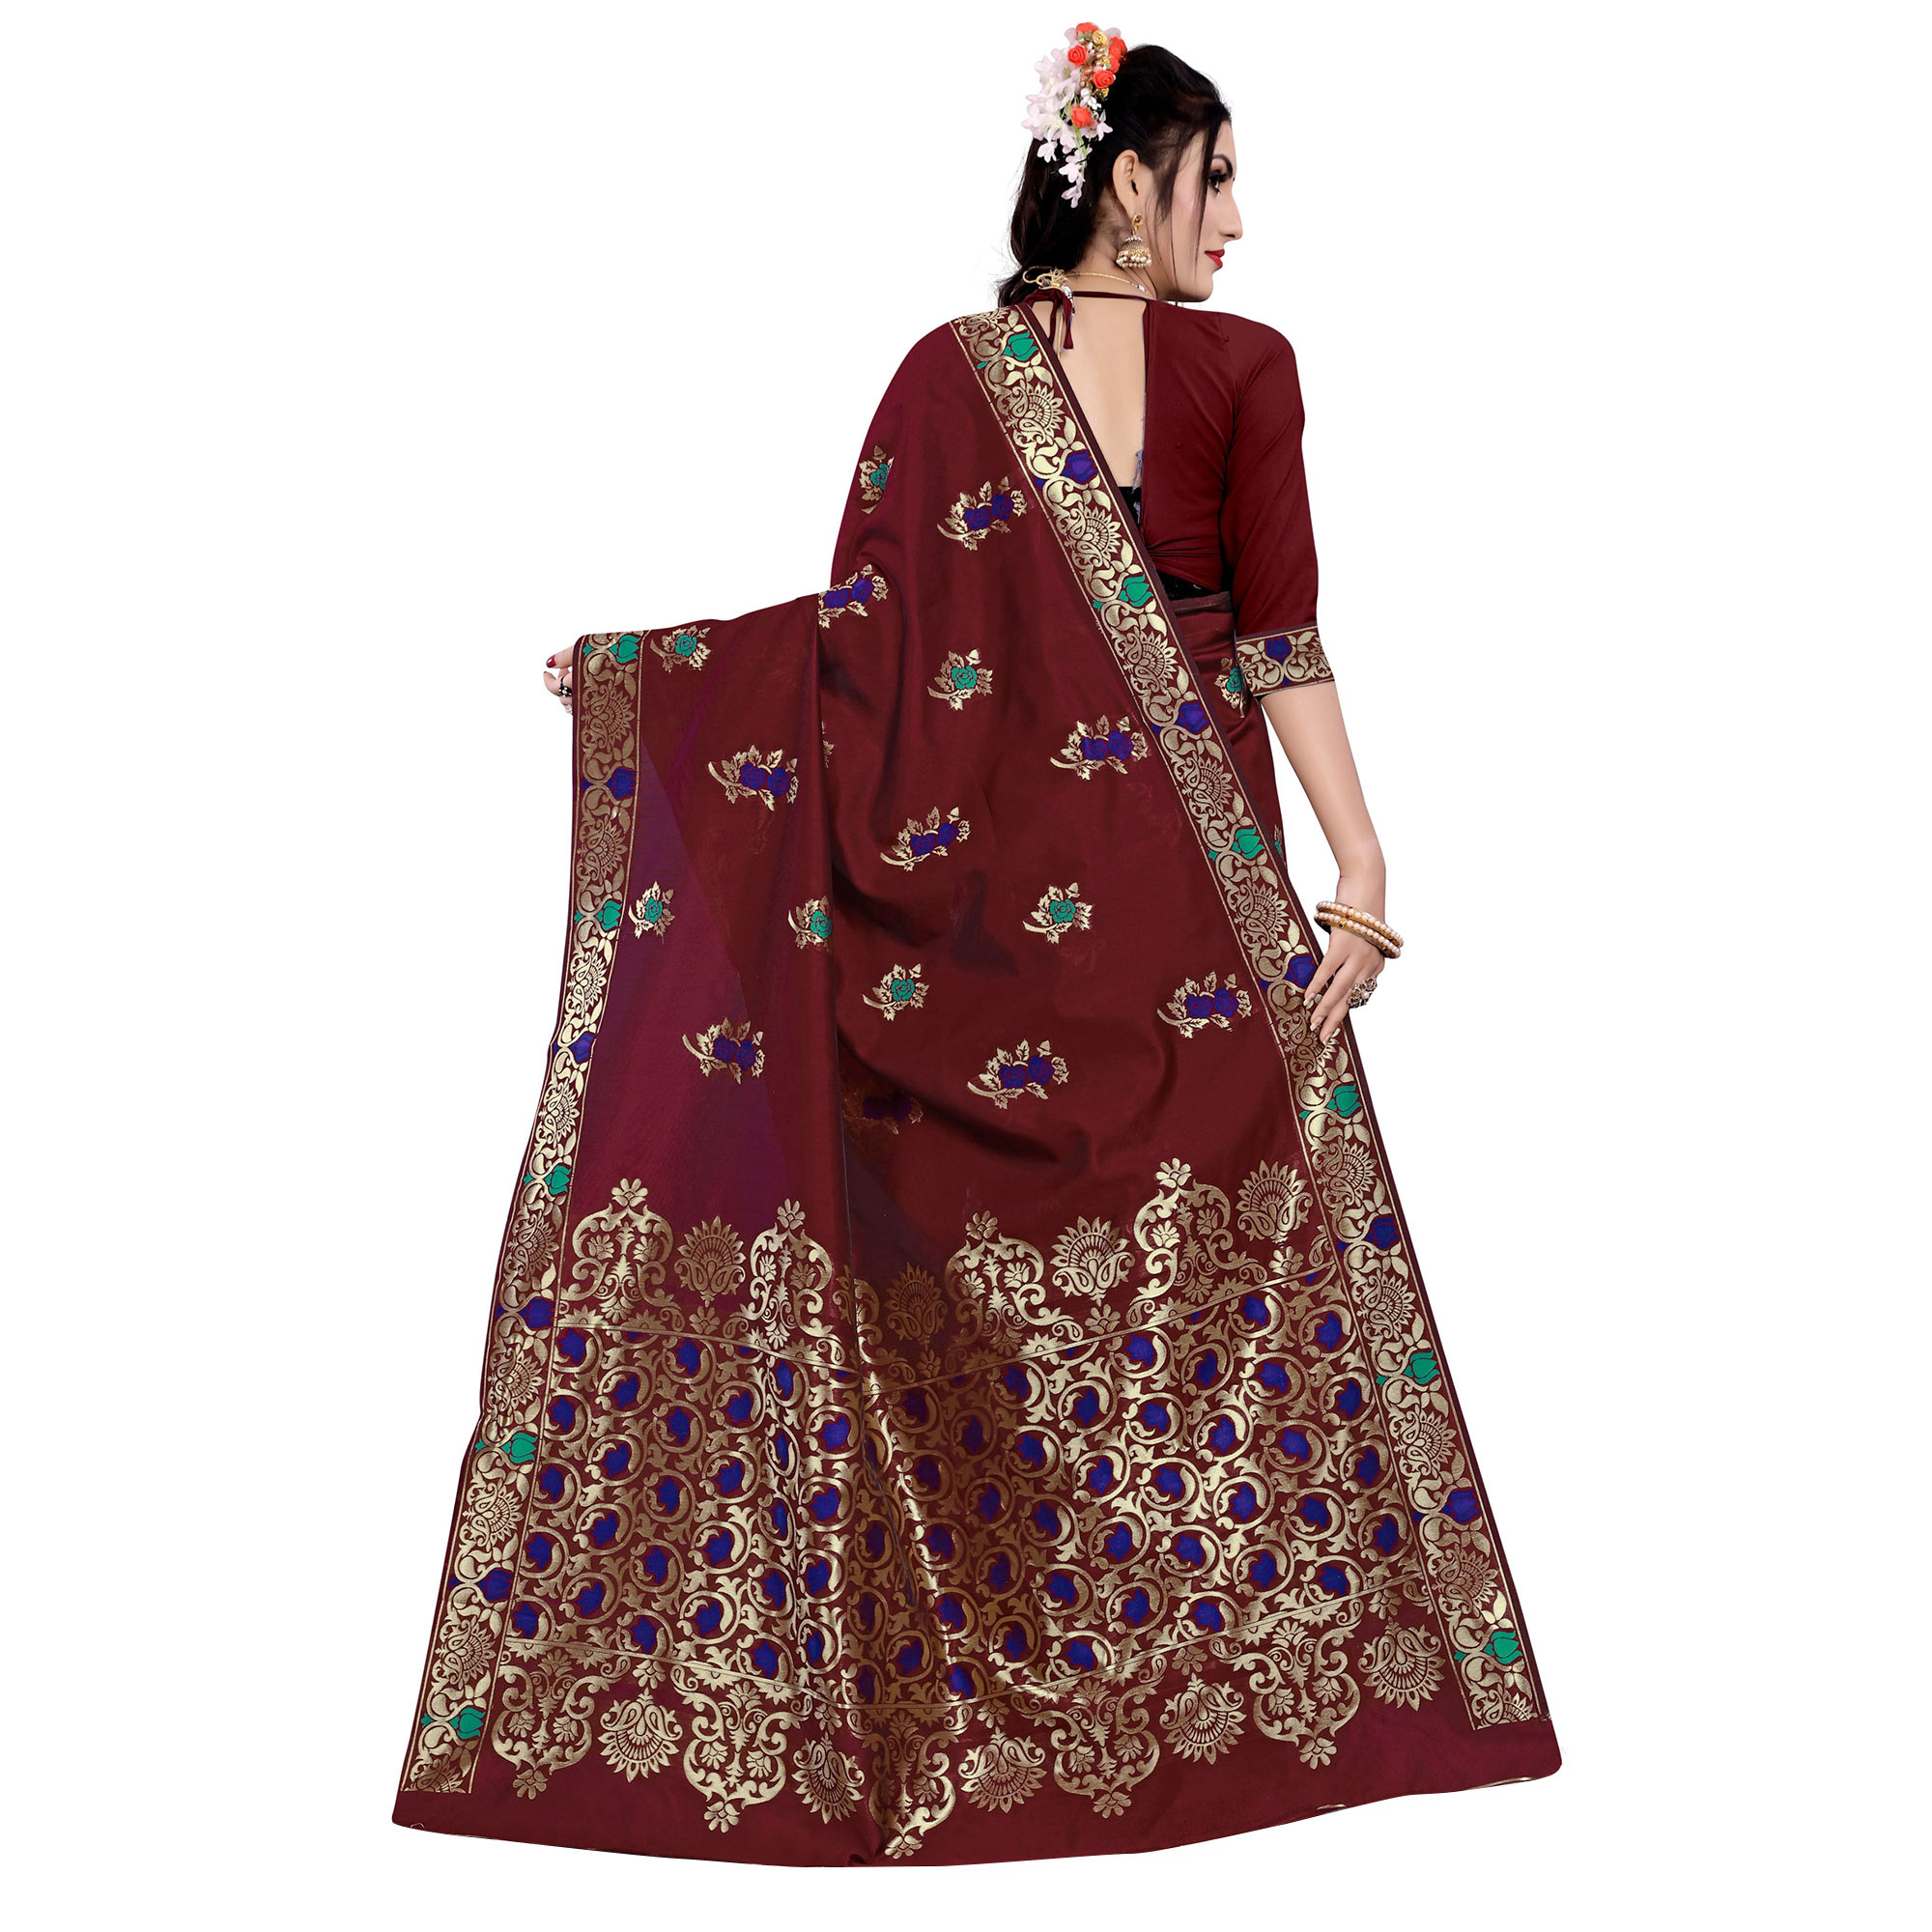 Entrancing Maroon Colored Festive Wear Woven Work Banarasi Silk Saree